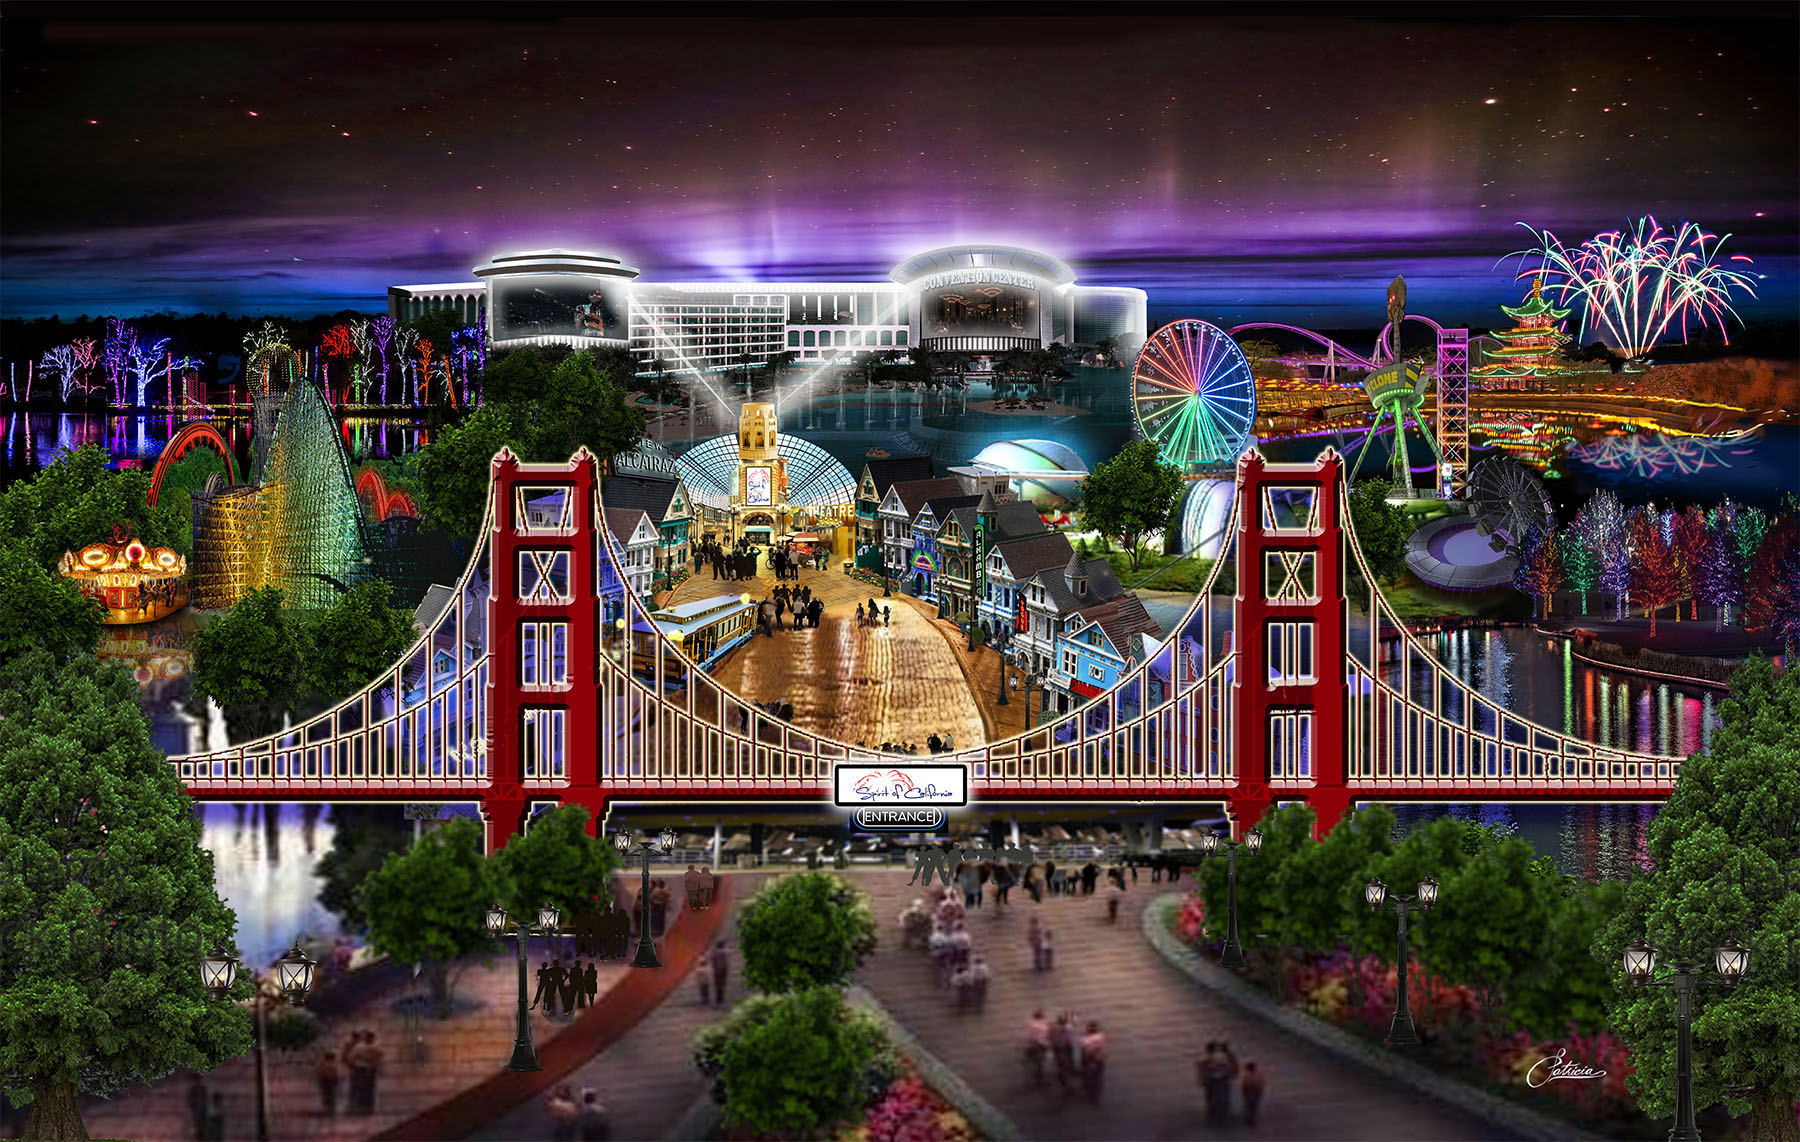 THEME PARK ENTRY night view FINAL 18x12 (3) 091817